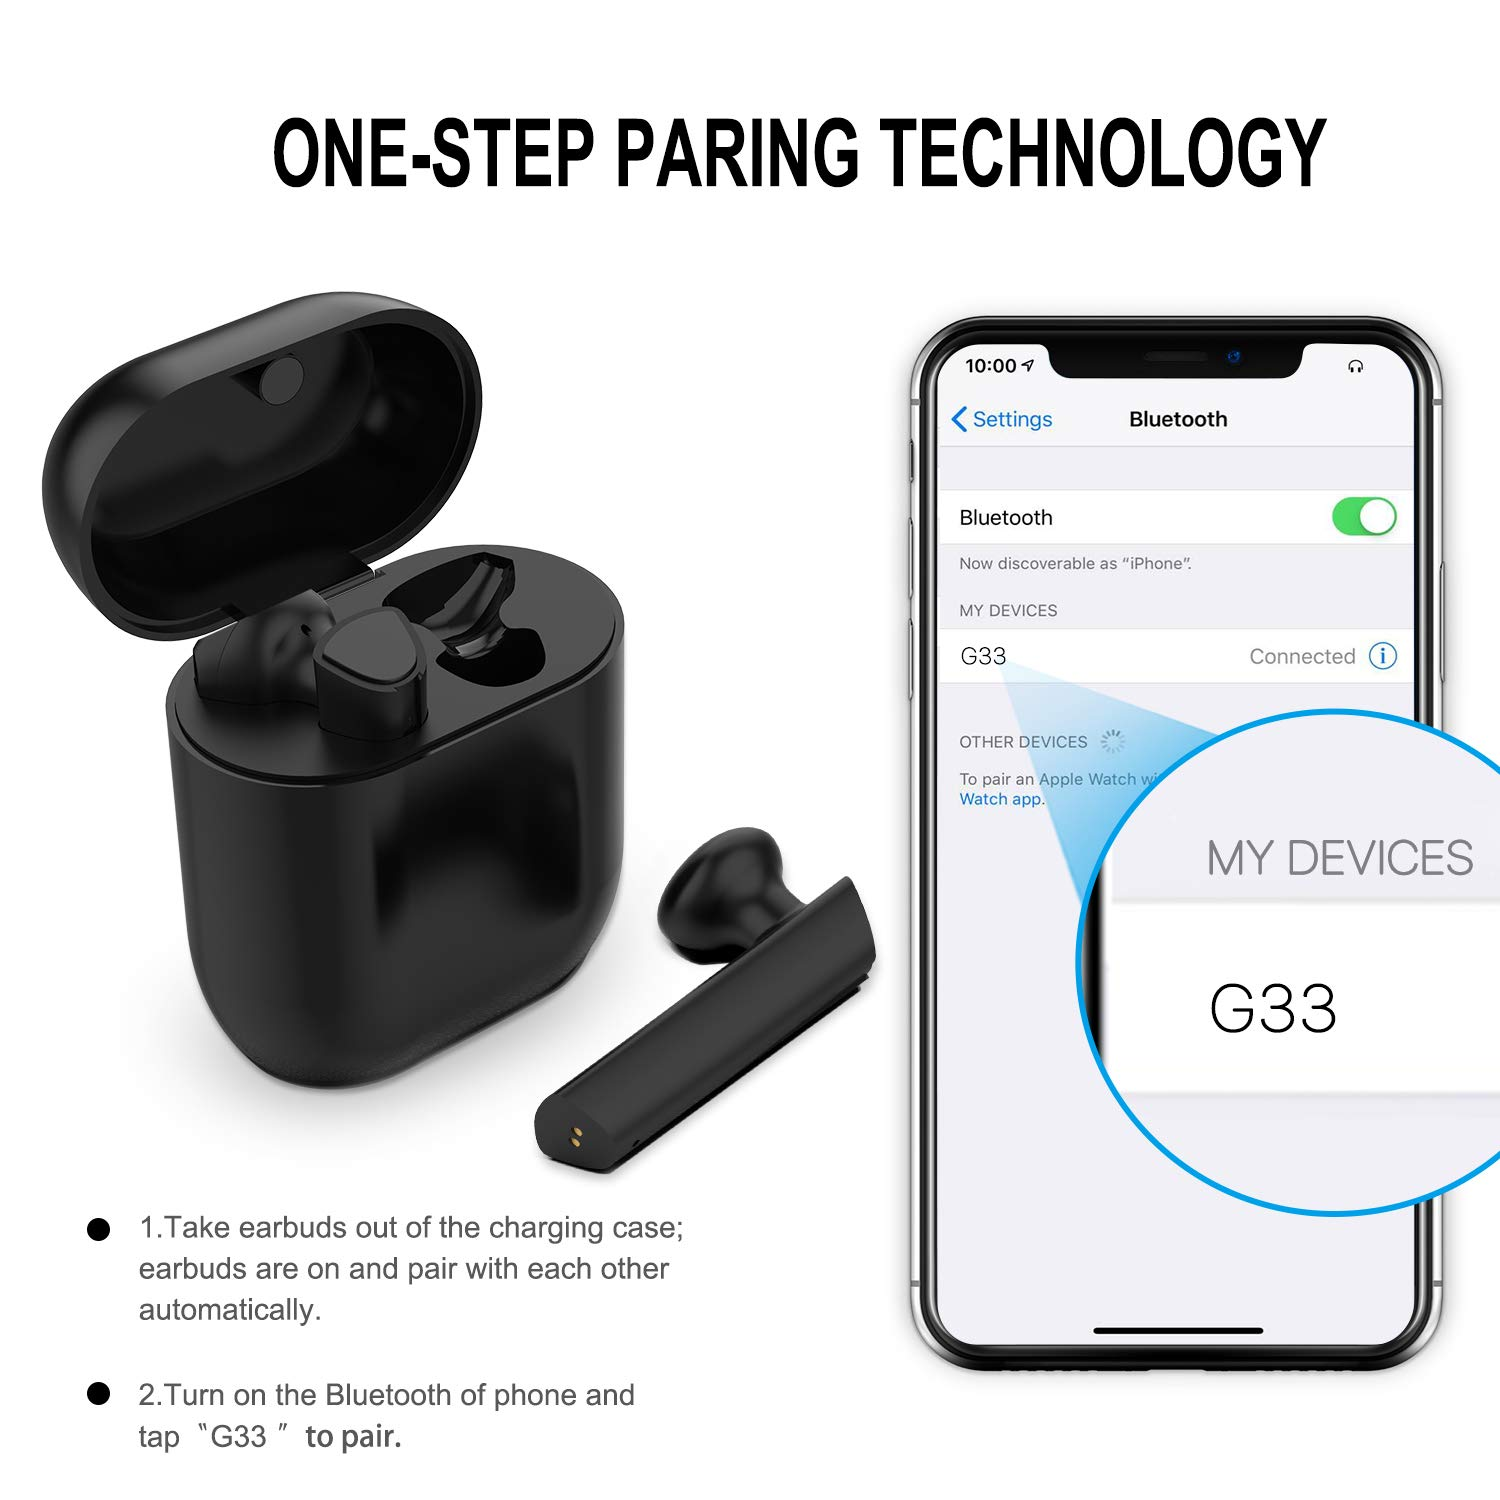 Upgraded Bluetooth 5.0 Wireless Earbuds, Bluetooth Headphones with 35 Hour Playtime Deep Bass HiFi 3D Stereo Sound, Built-in Mic Earphones with Portable Charging Case for Smartphones and Laptops by Andore (Image #5)